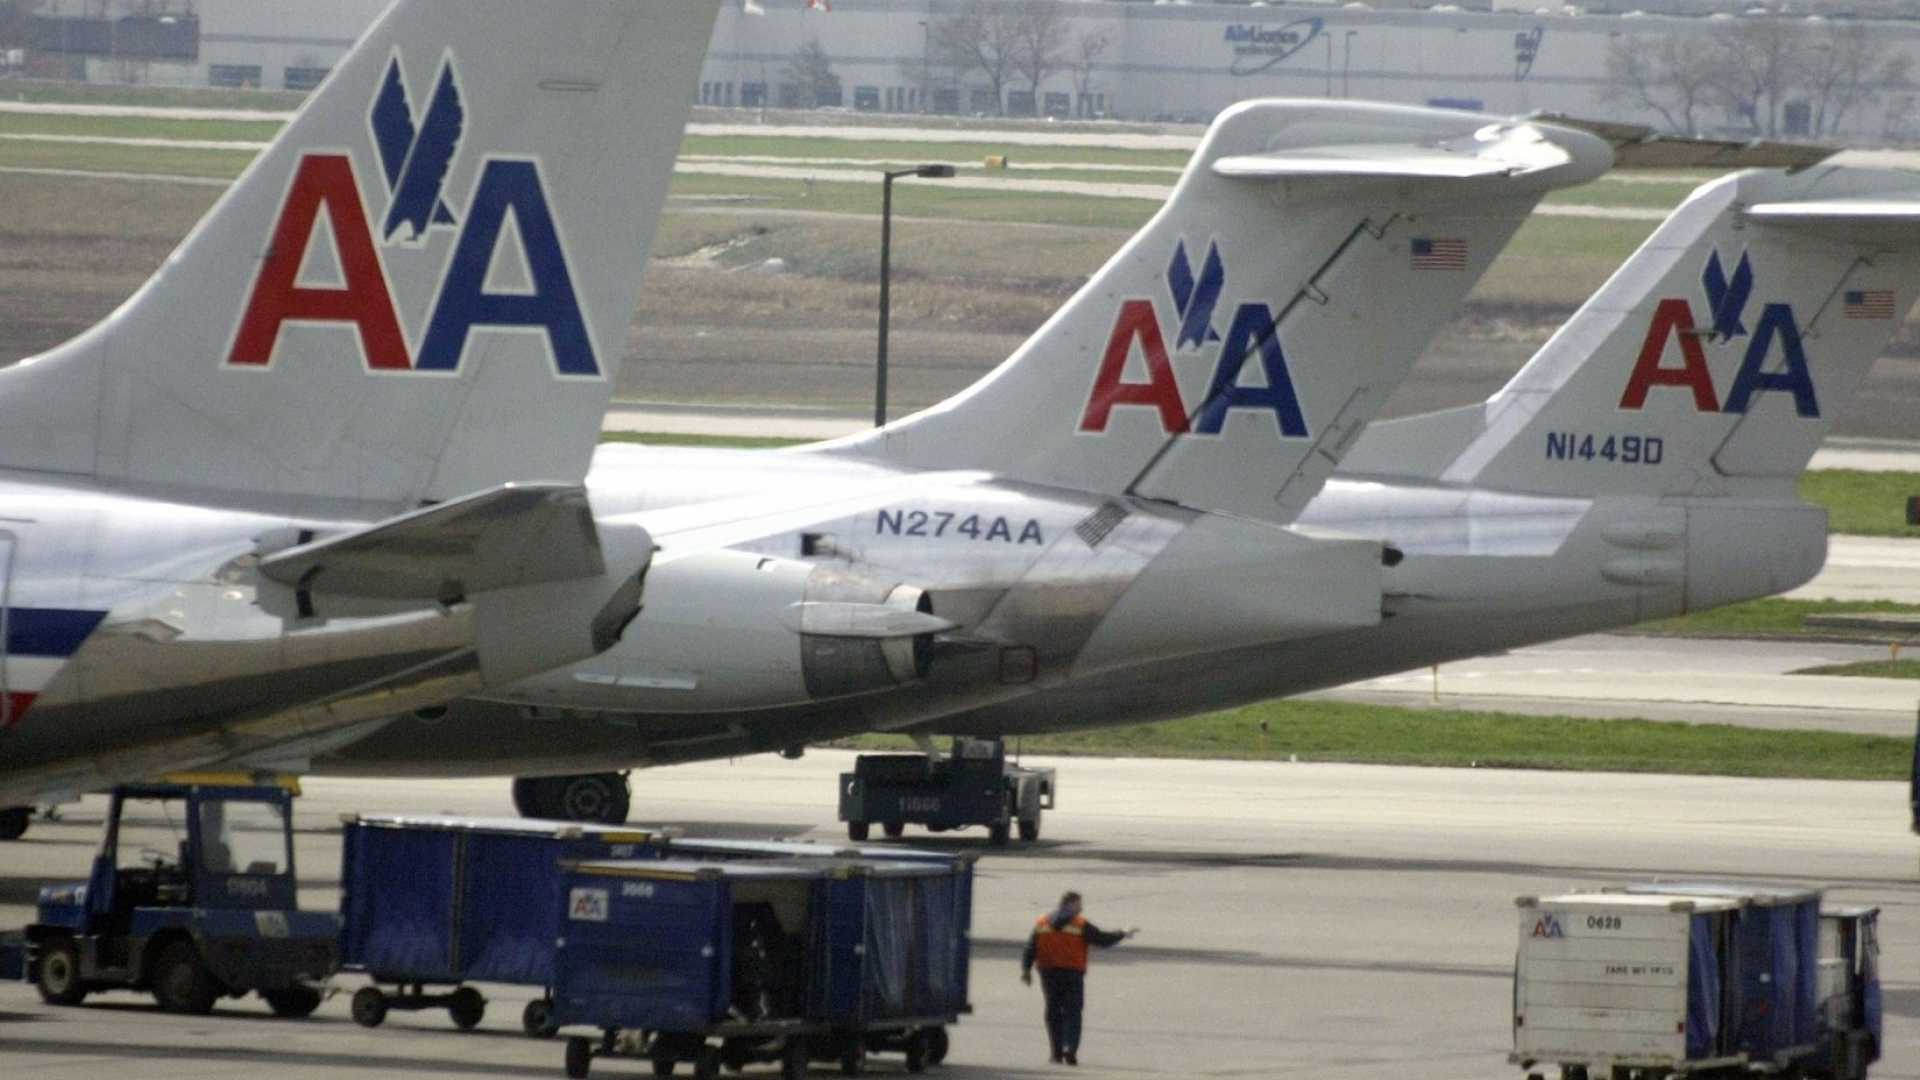 The Real Reason American Airlines Just Raised Baggage Fees 25 Percent